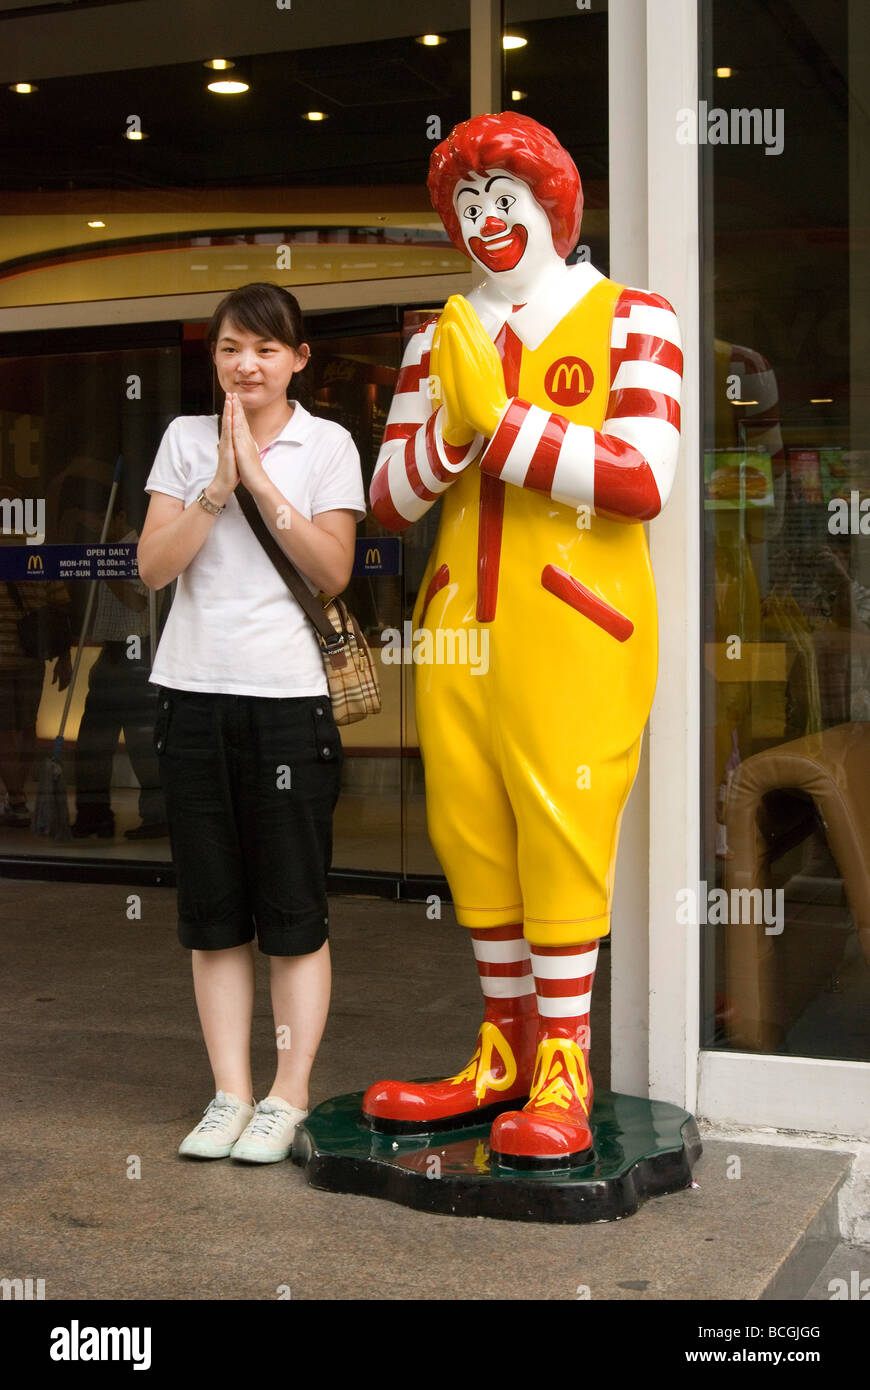 Ronald mcdonald greeting customers with the traditional thai ronald mcdonald greeting customers with the traditional thai greeting called a wai at the entrance to a mcdonalds restaurant kristyandbryce Images